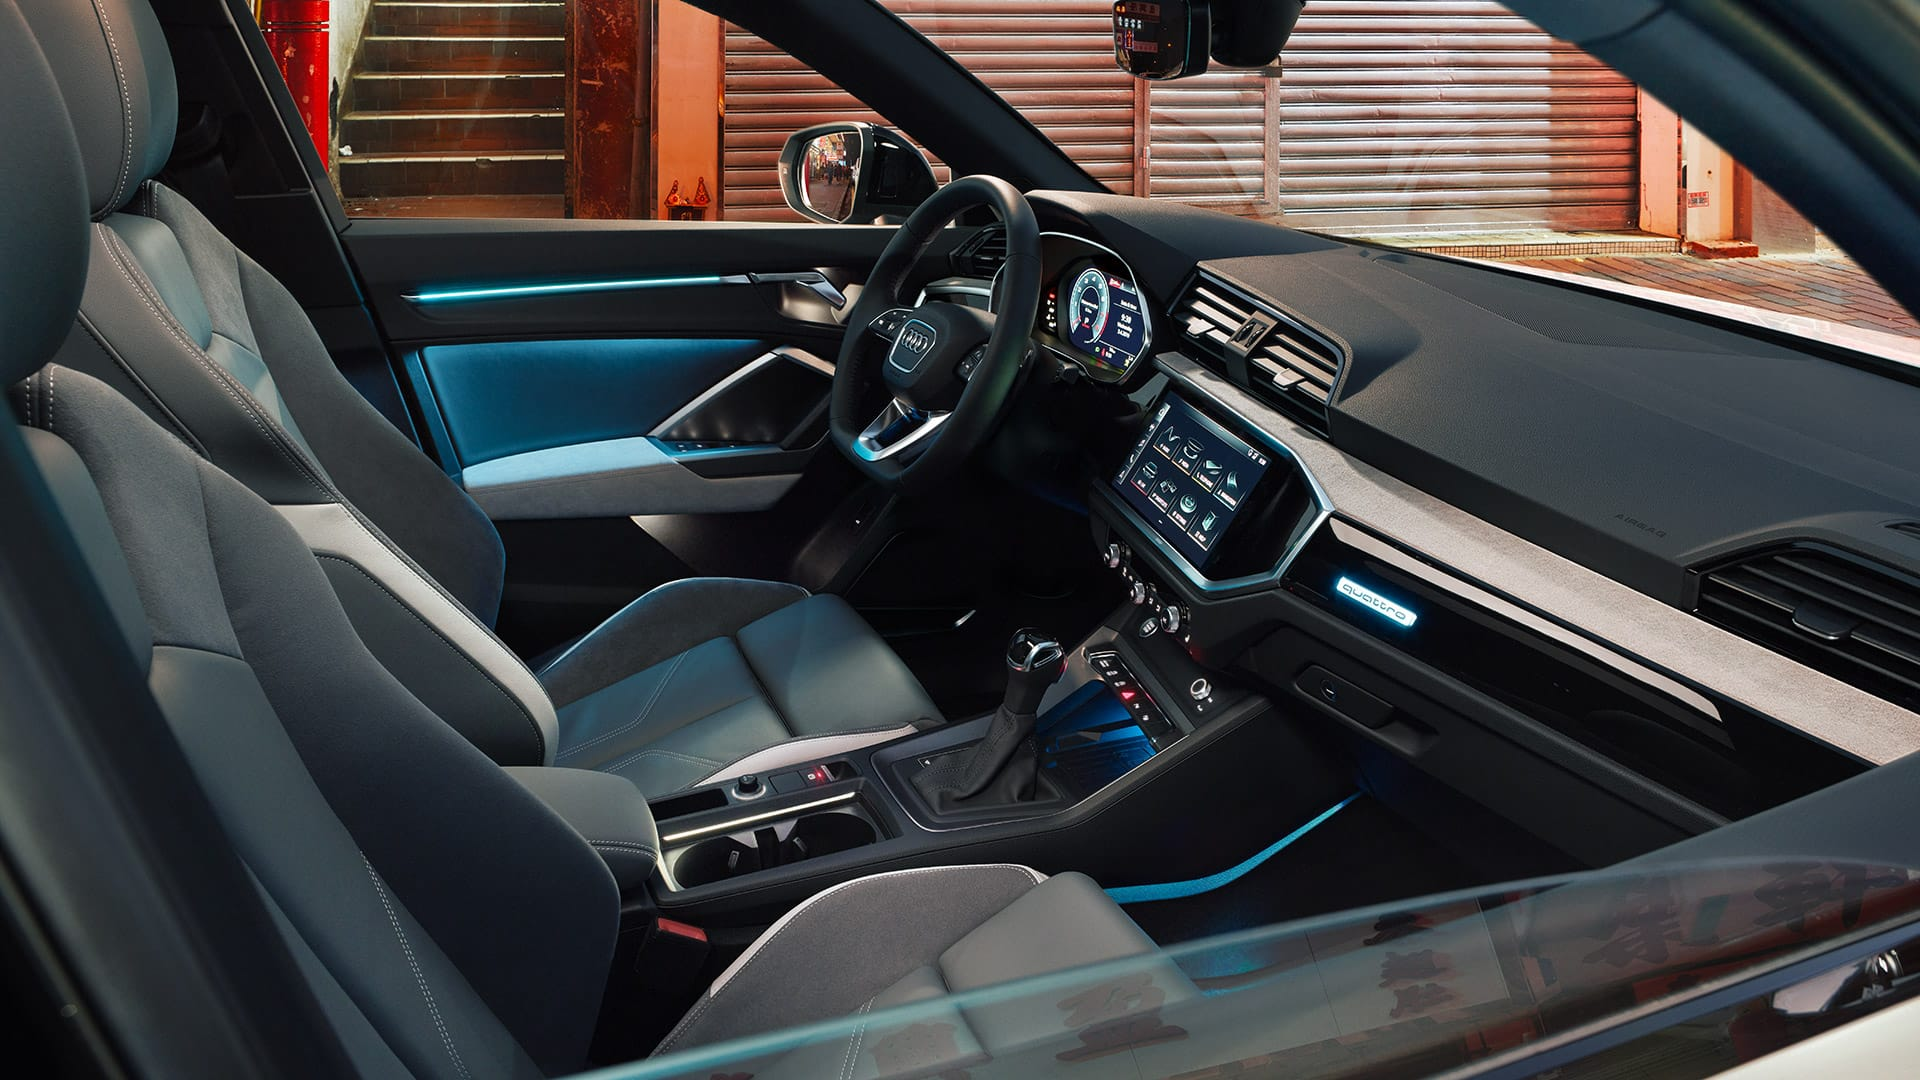 Interior Audi Q3 Sportback with ambient light